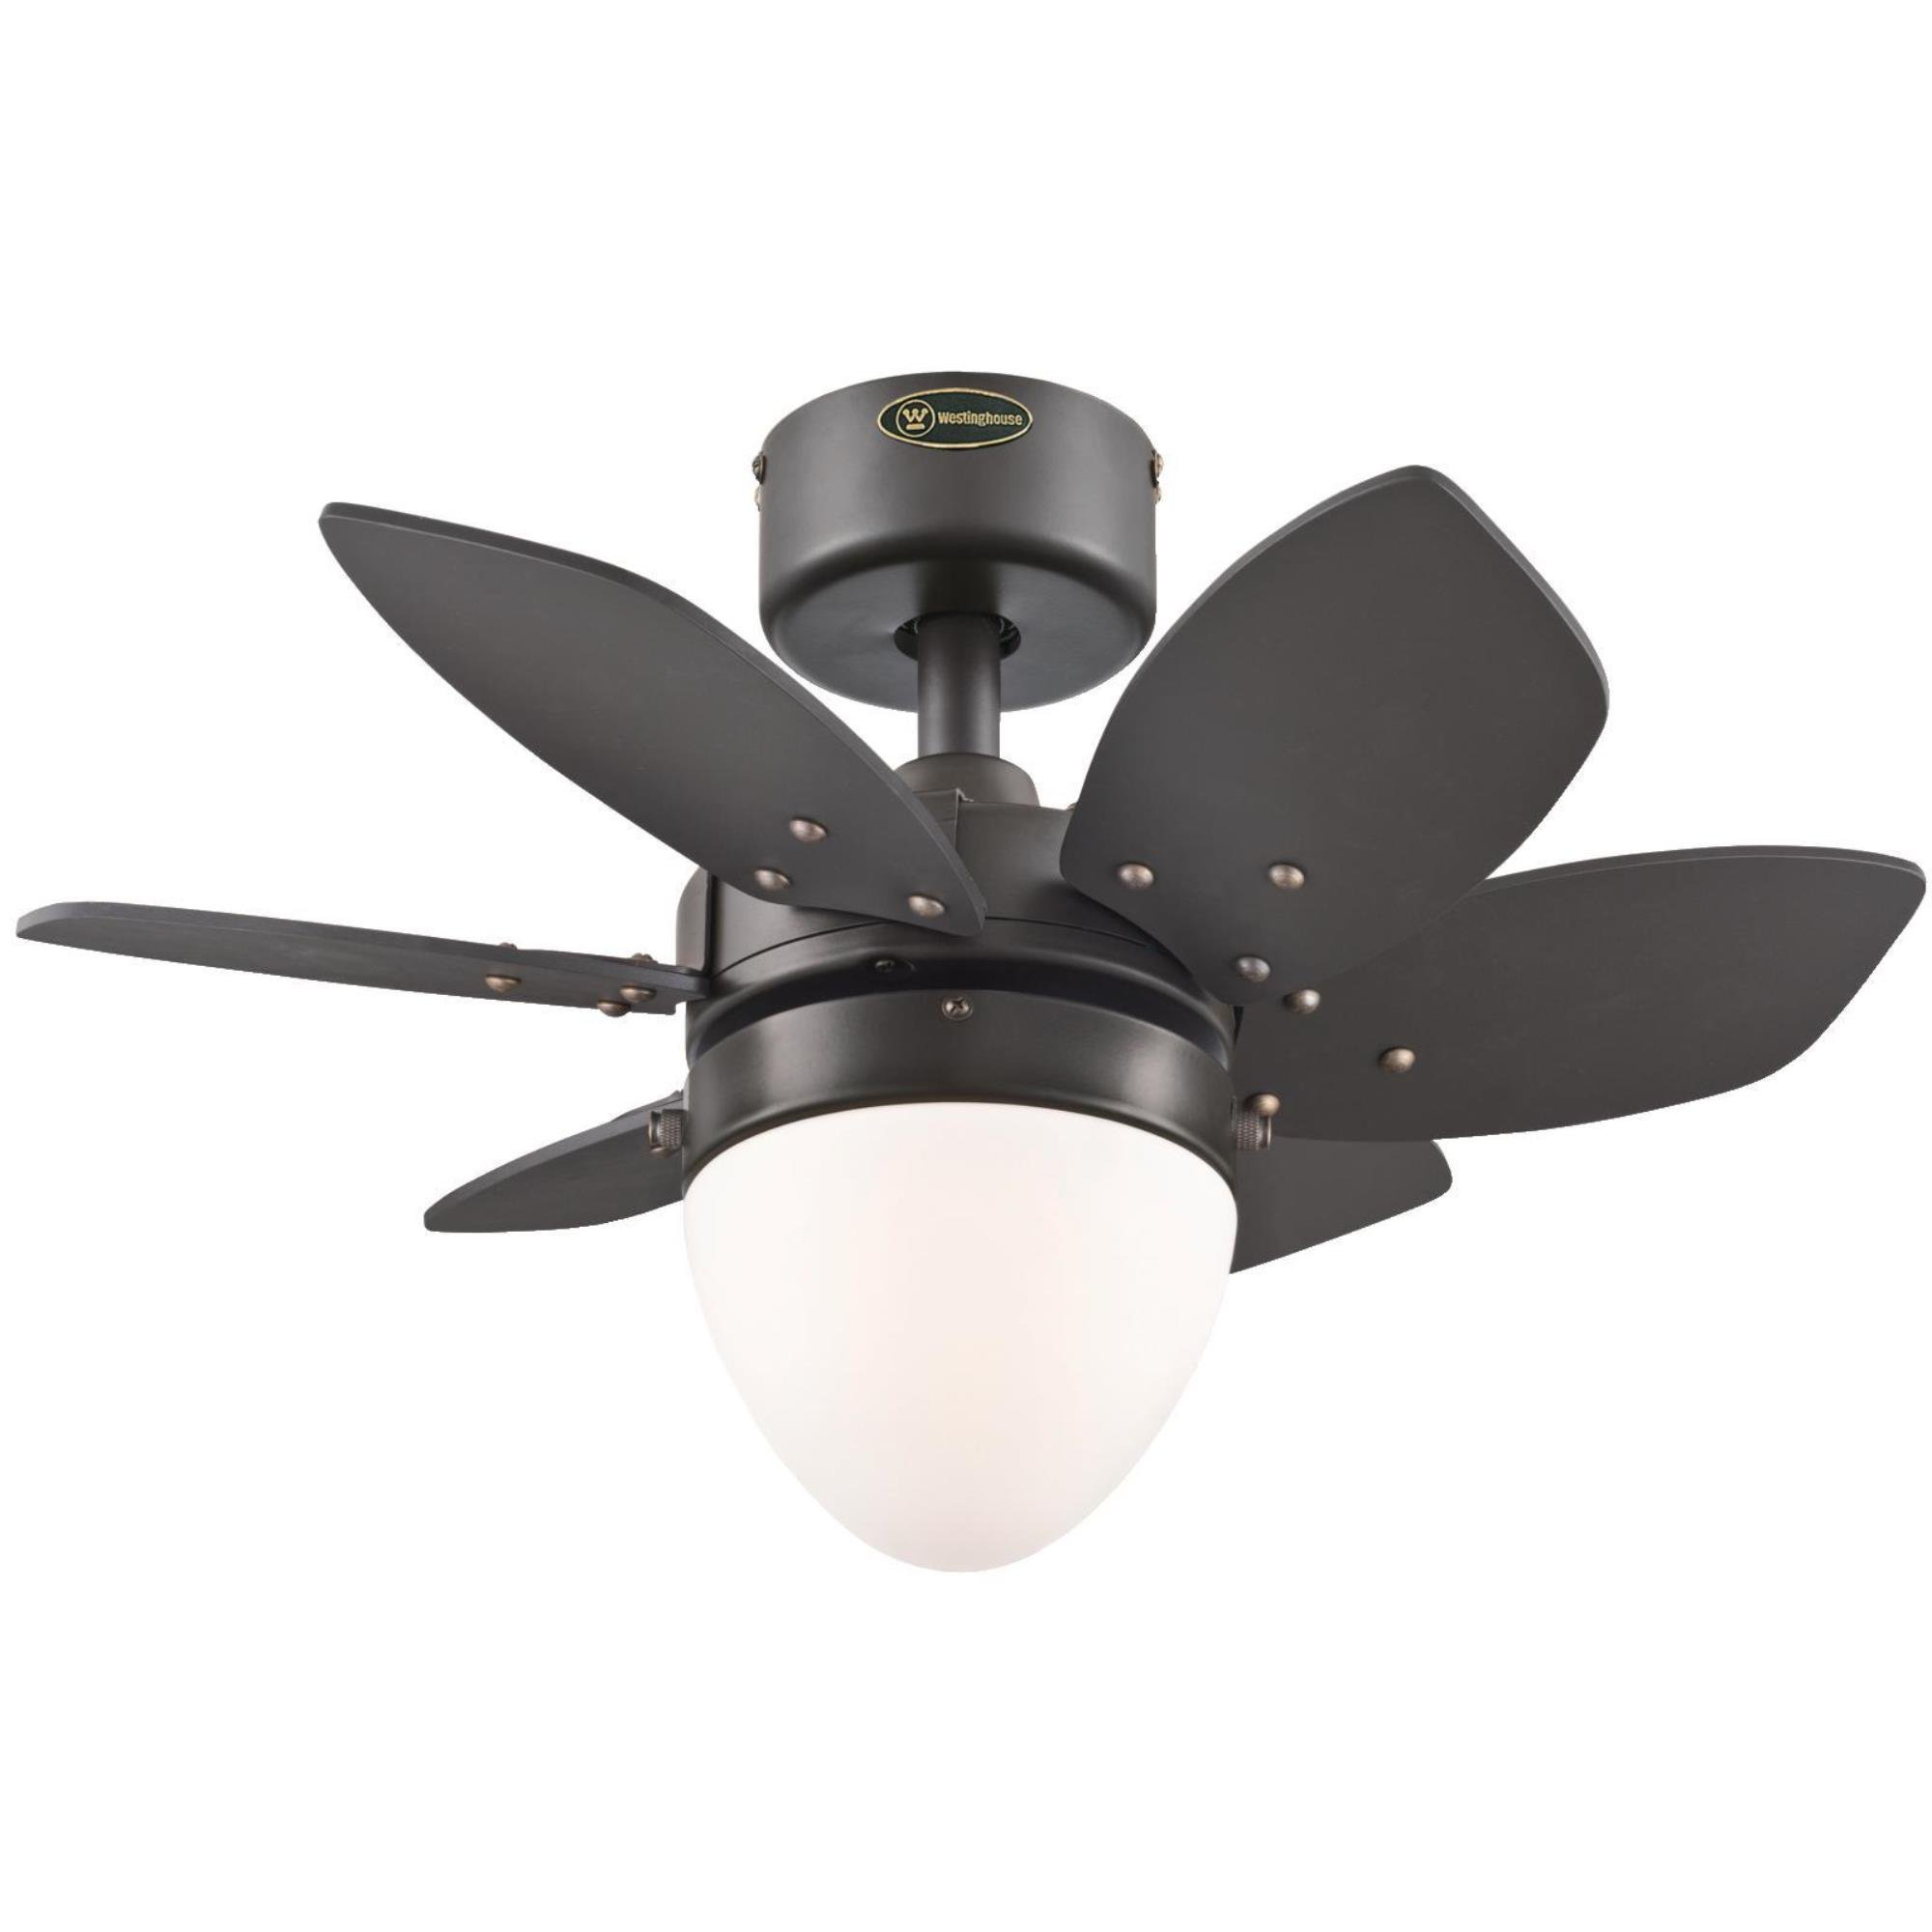 Westinghouse  7222900 Origami Single-Light 24-Inch Reversible Six-Blade Indoor Ceiling Fan, Espresso with Opal Frosted Glass